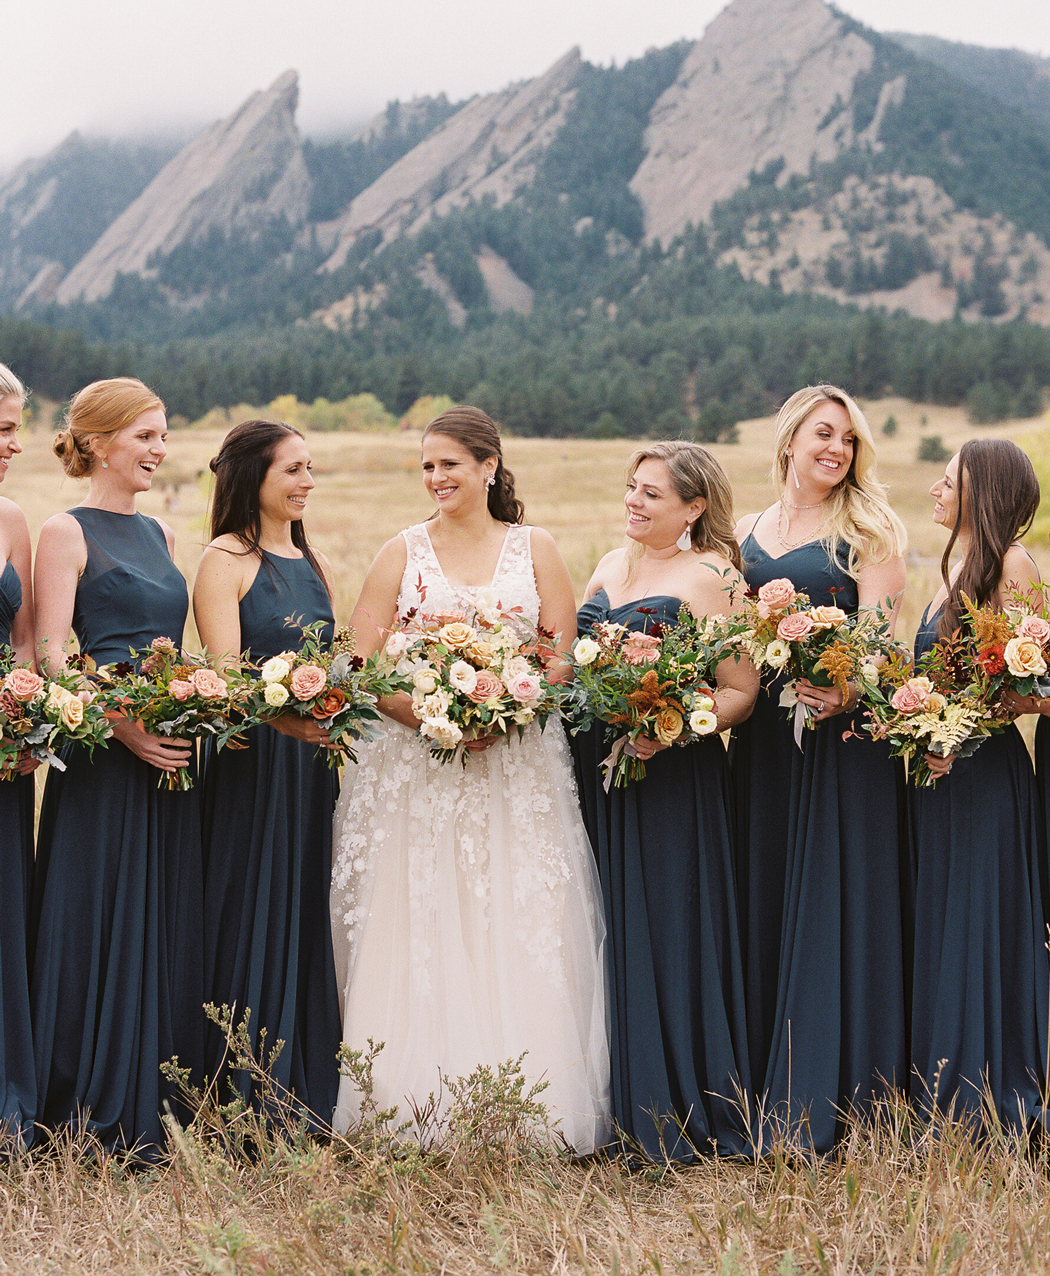 bride surrounded by bridesmaids wearing floor length dark chiffon dresses